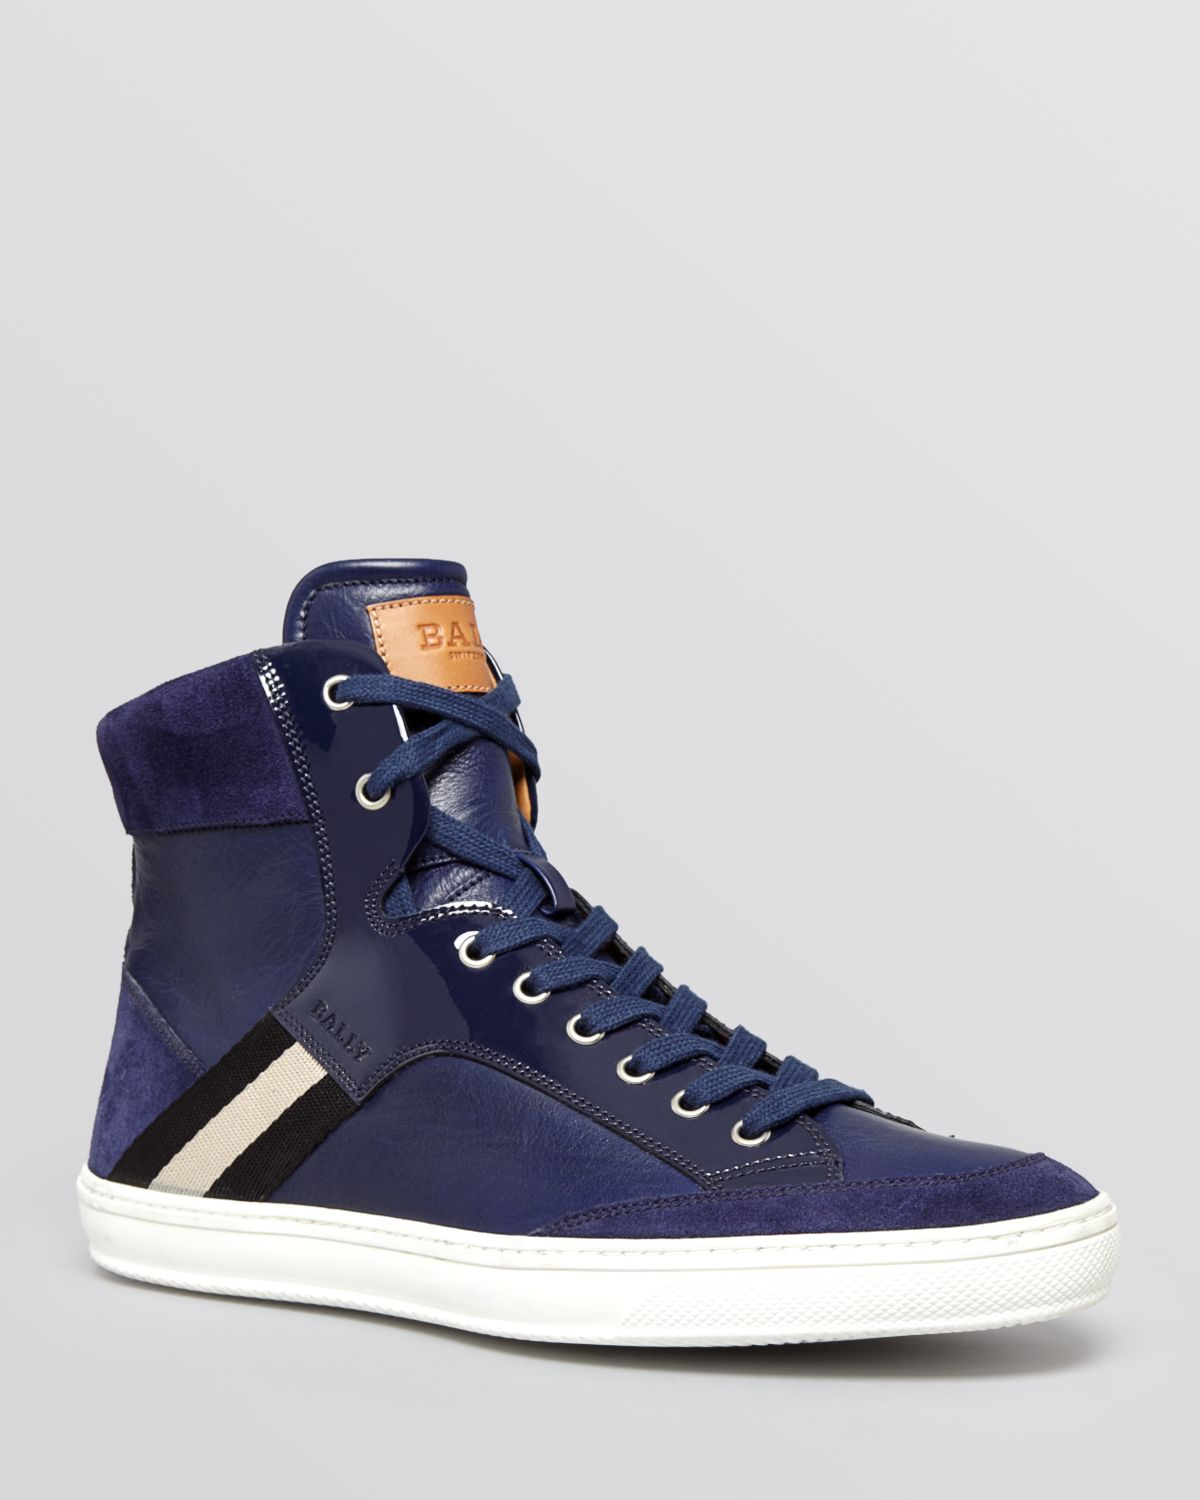 Lyst Bally Oldani High Top Sneakers In Blue For Men